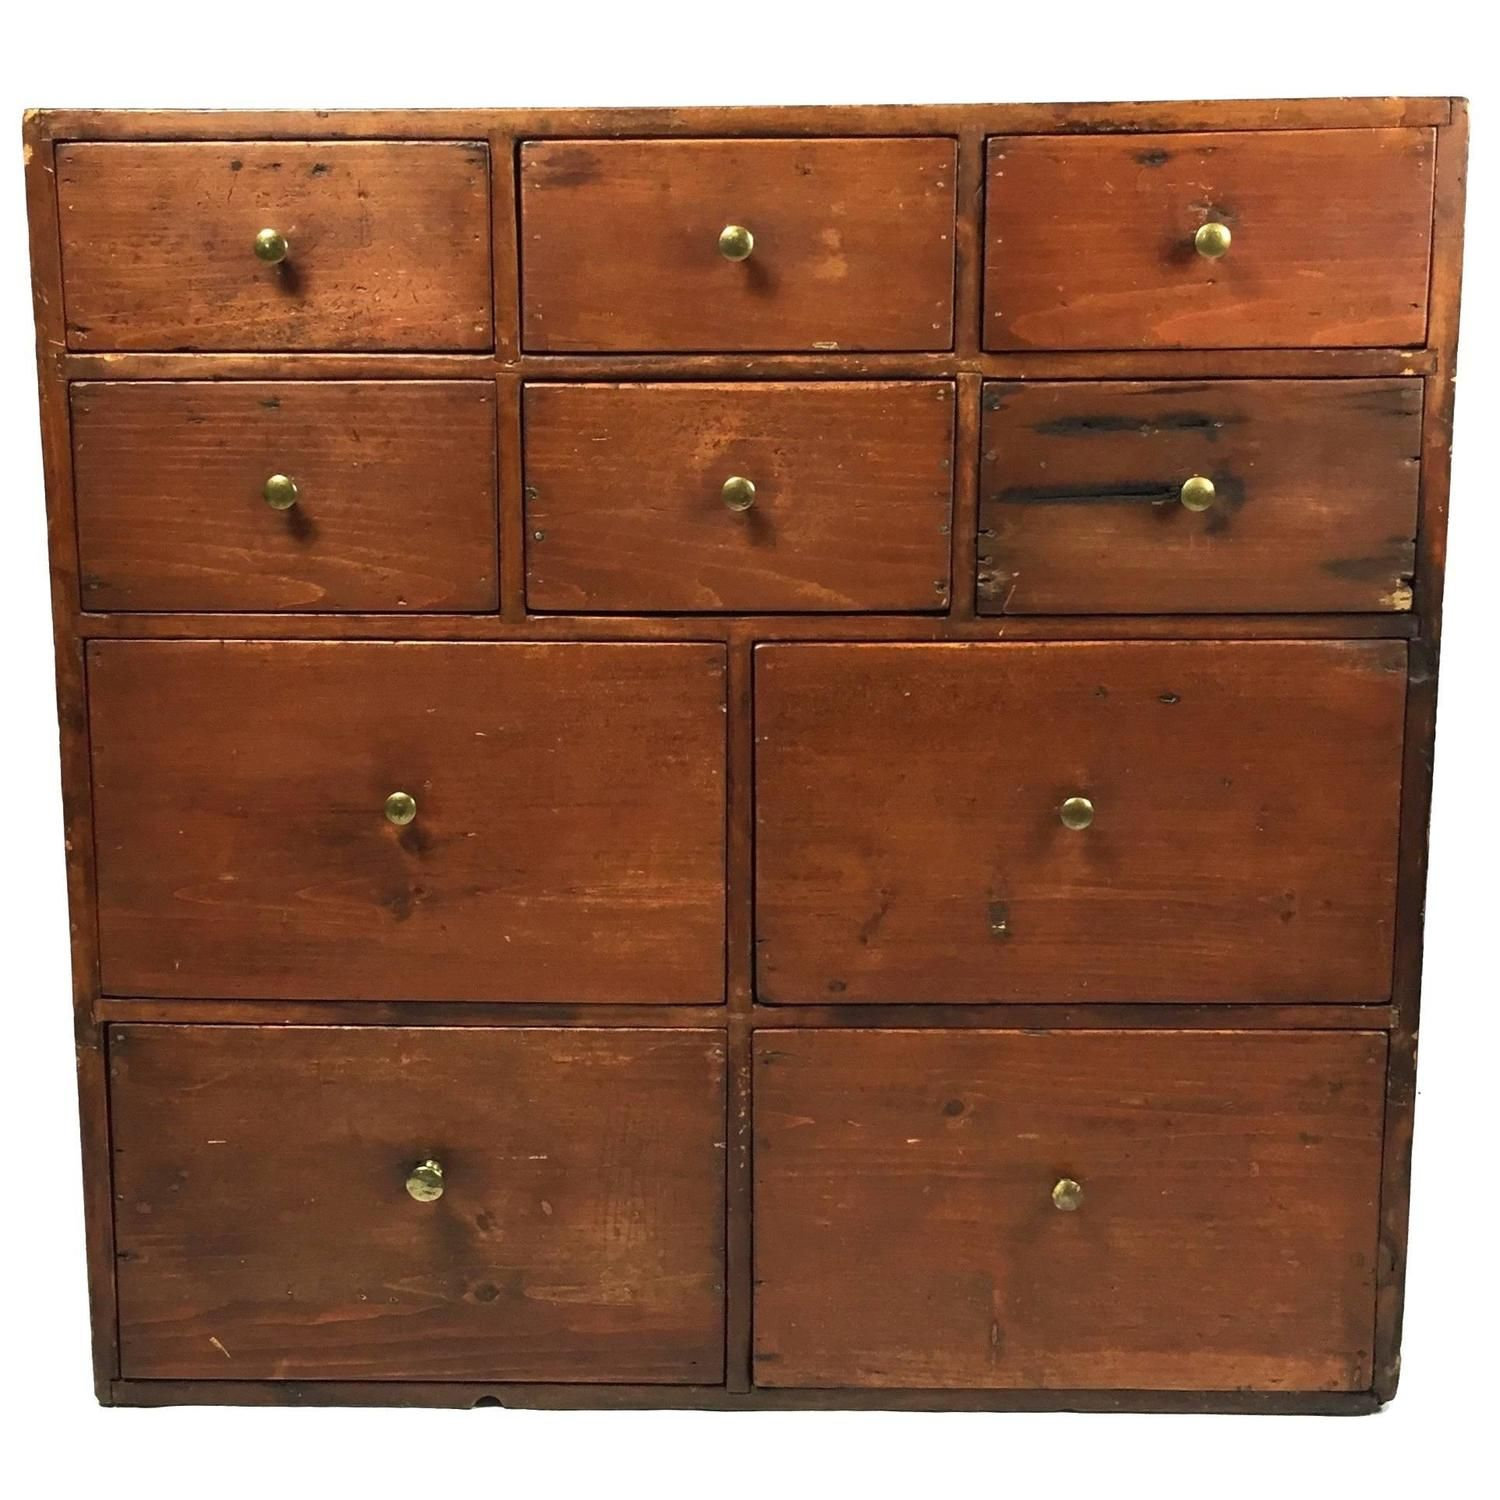 Beautiful Early American Apothecary Multi Drawer Cabinet